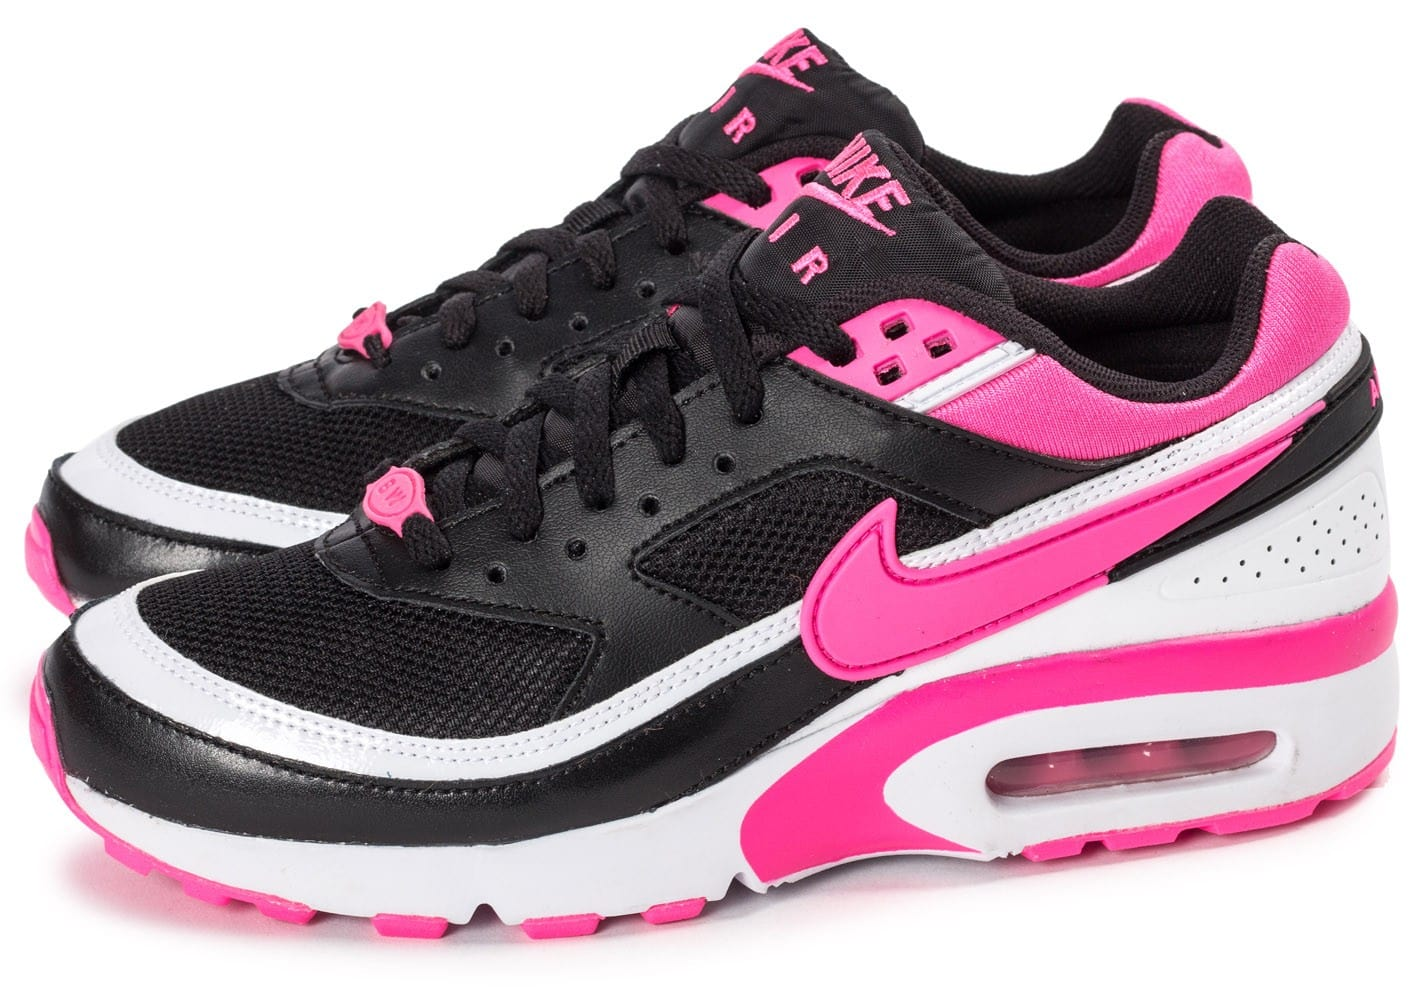 sports shoes fdb4d 163c5 air max bw noir et rose,Prix Pas Cher Nike Air Max Classic BW Femme France  Boutique